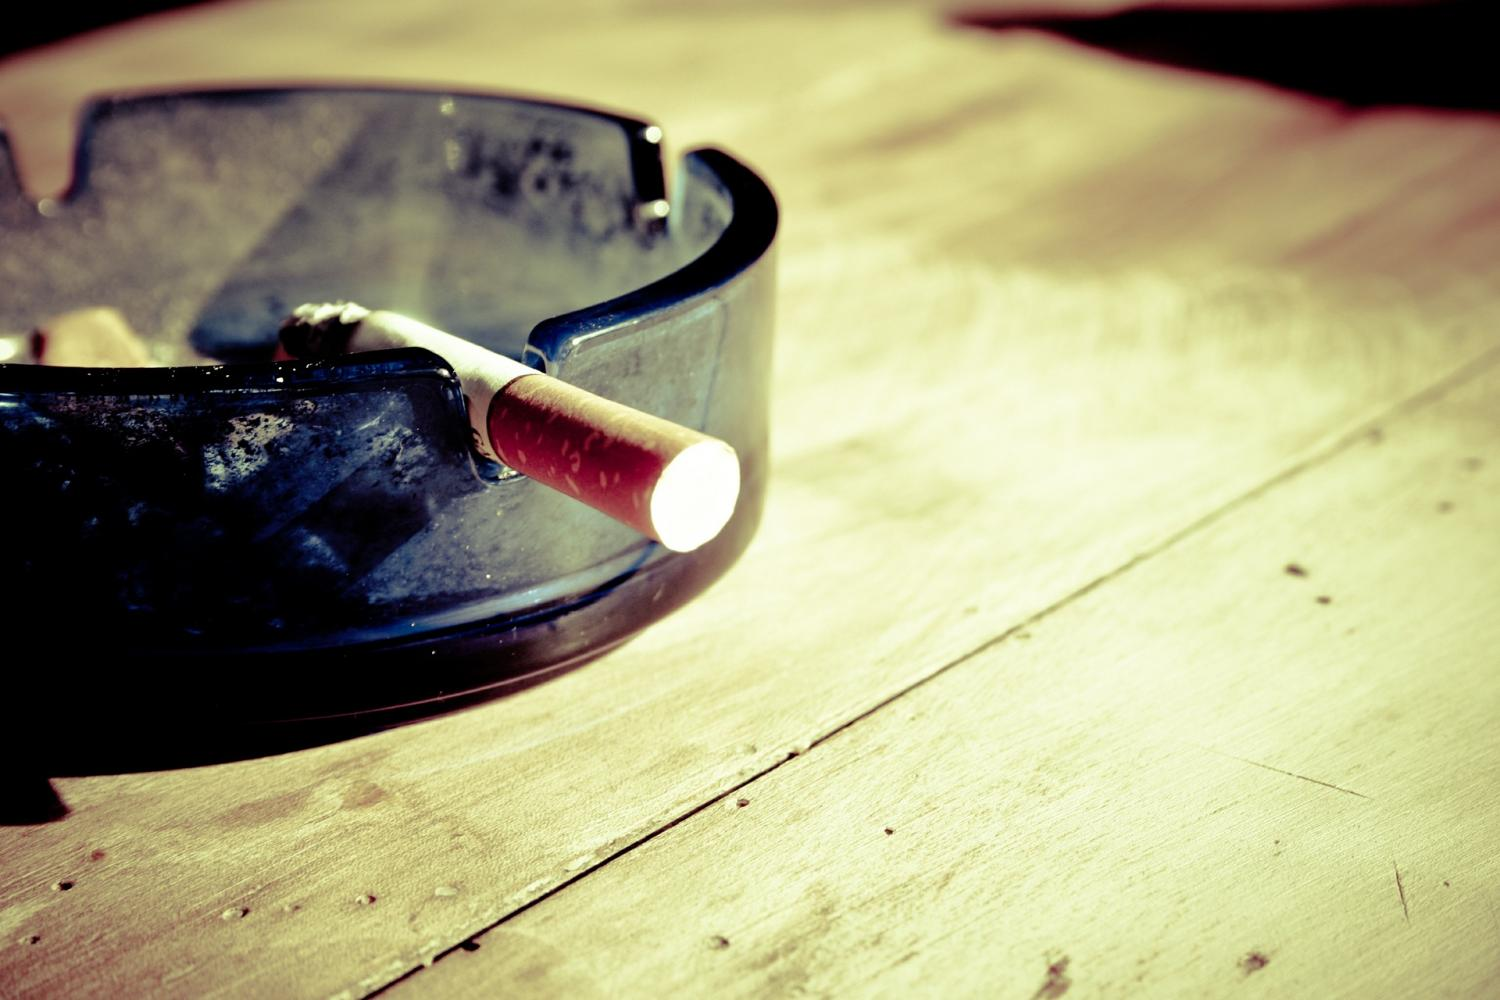 Warning label may have misled tobacco consumers for over 30